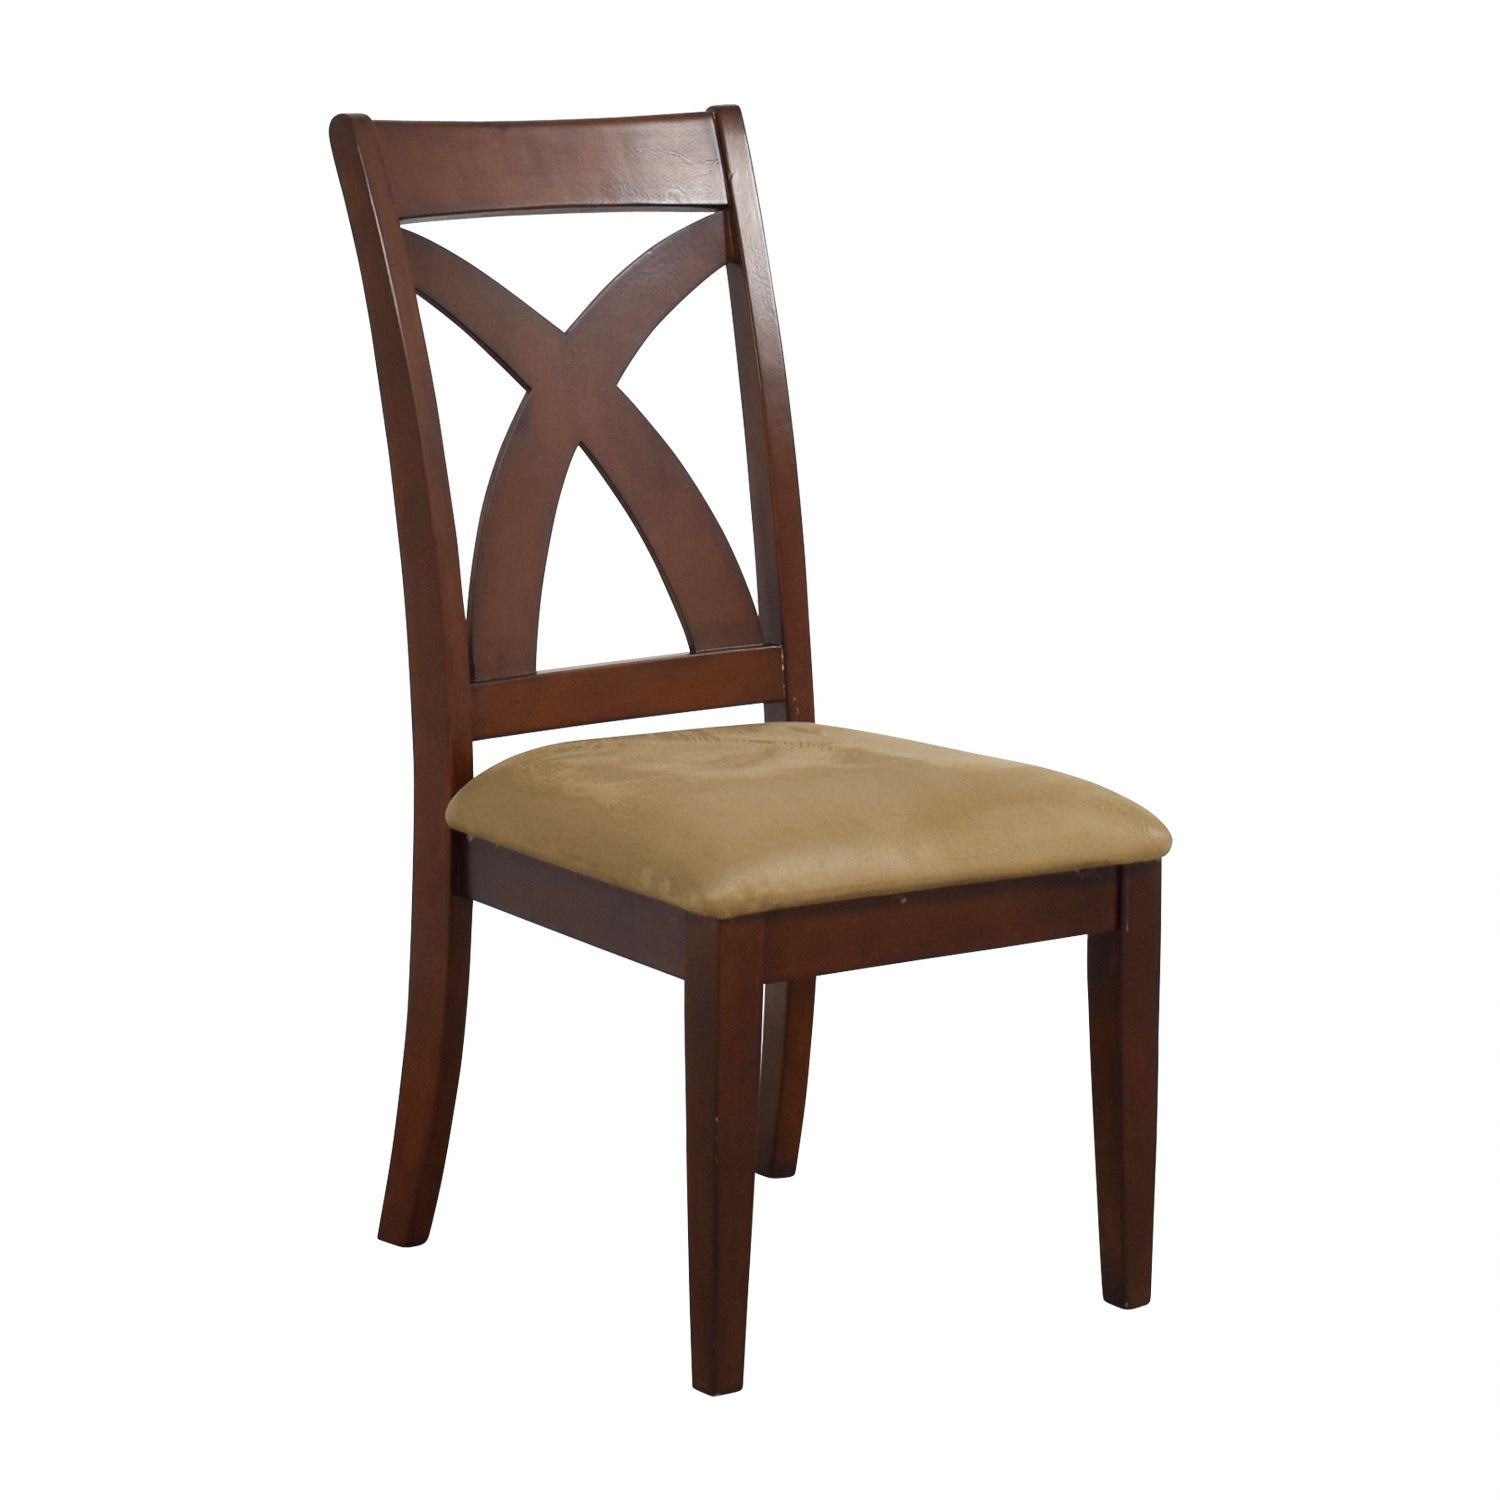 buy  Cross Back Wood Chair with Padded Seat online